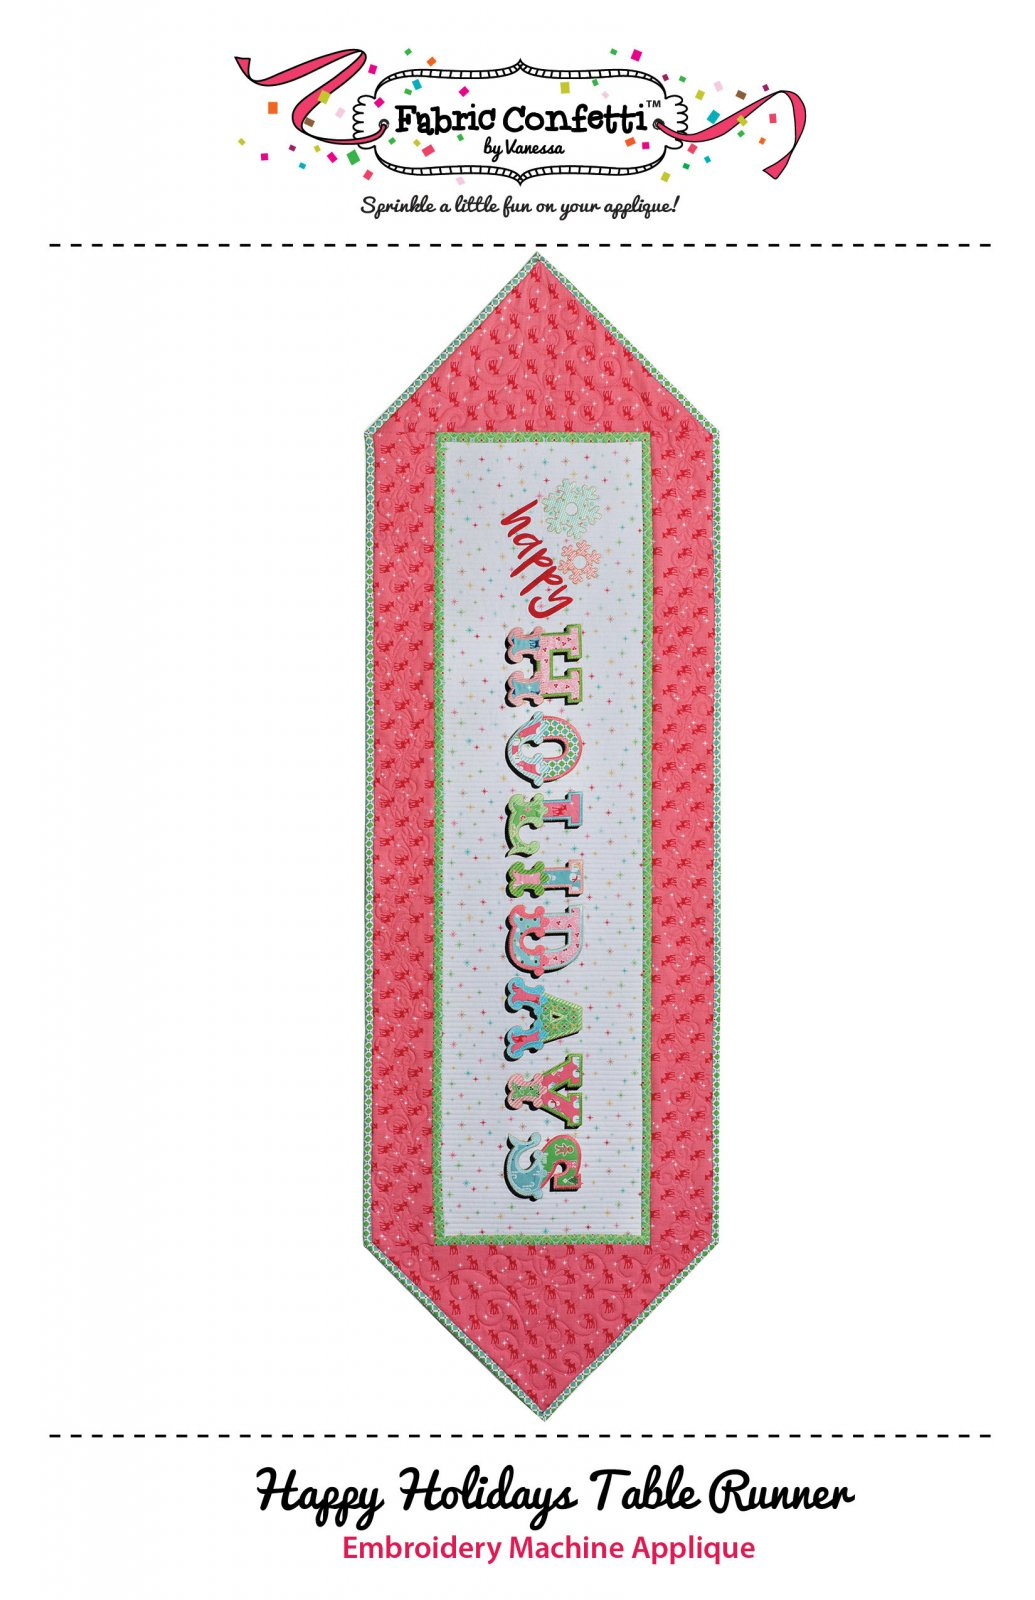 Happy Holidays Table Runner for Machine Embroidery